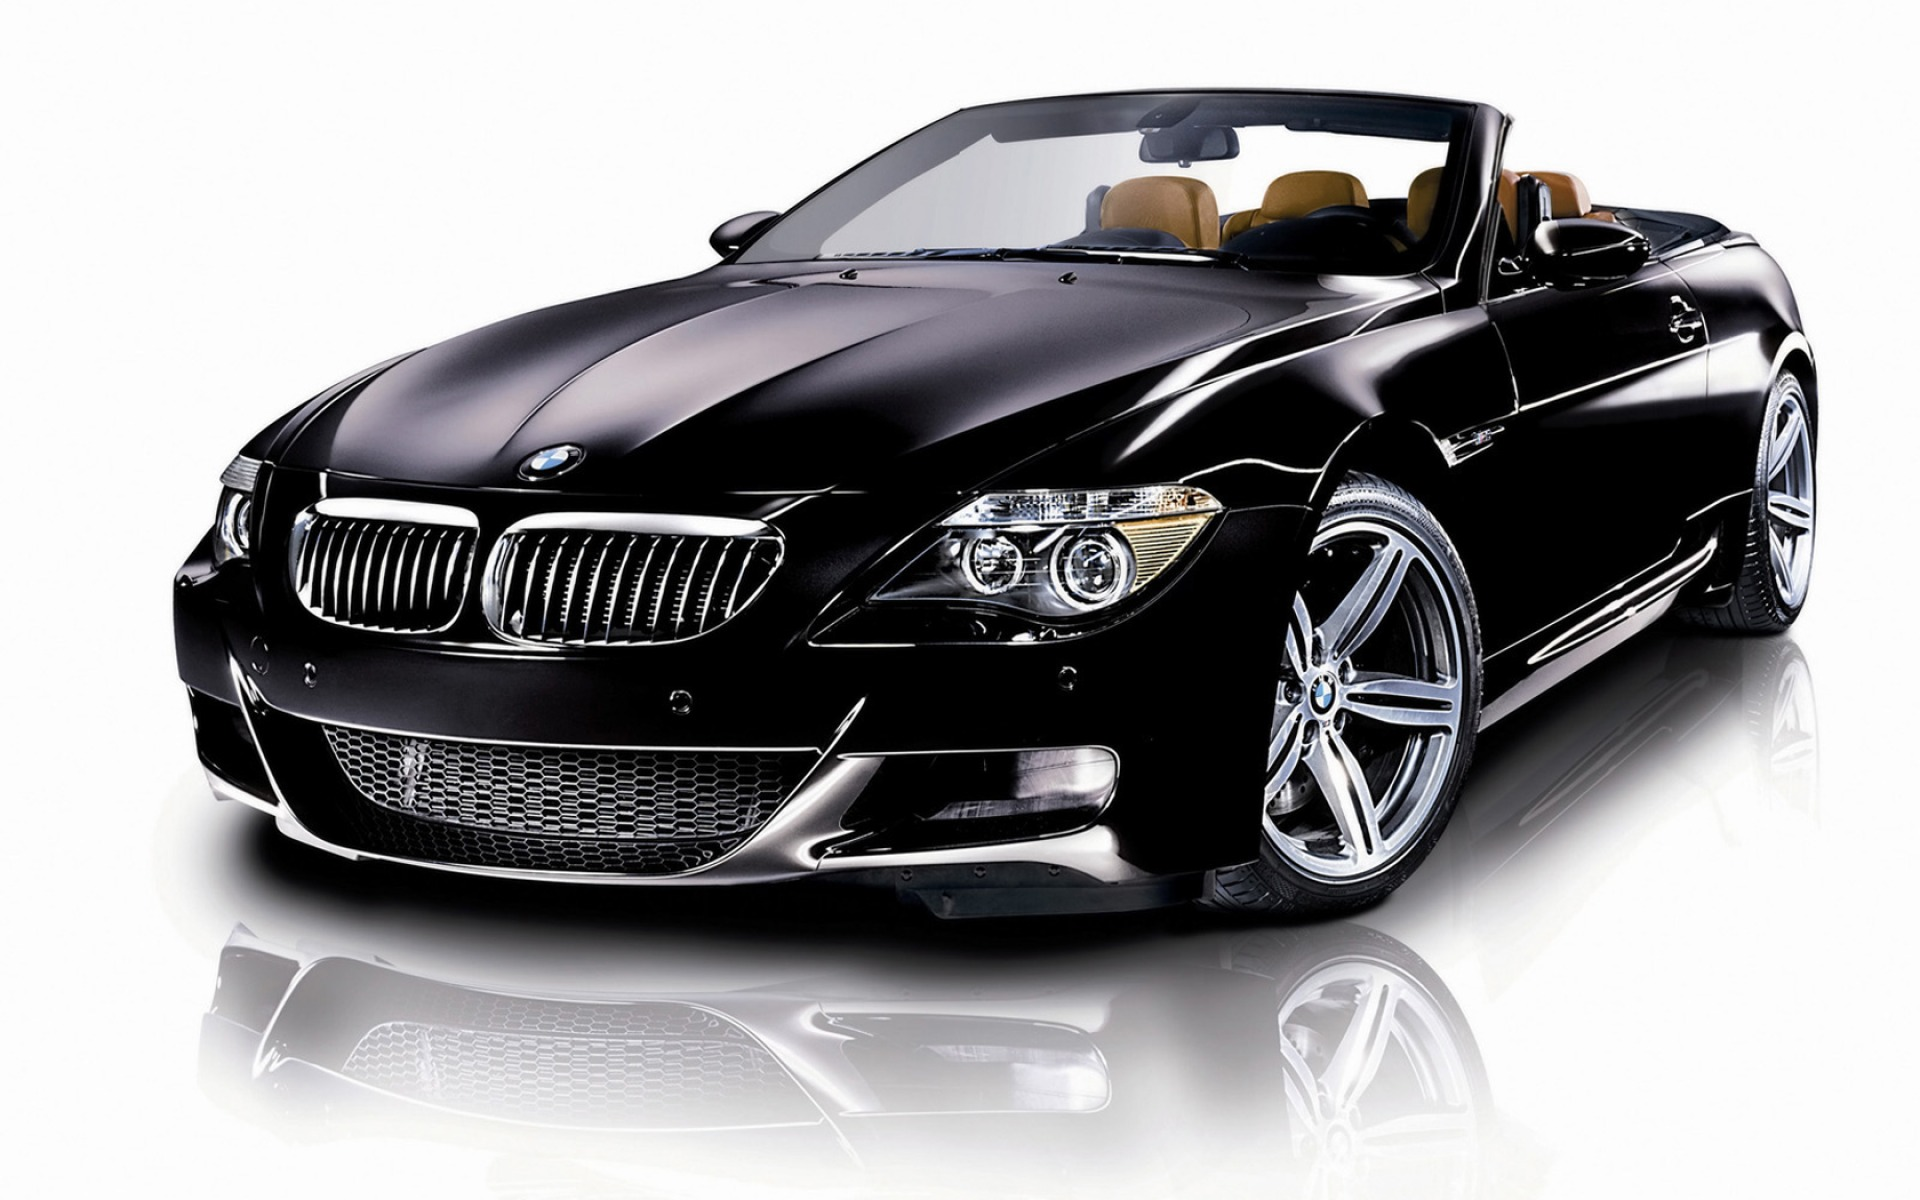 Ultrablogus  Seductive Bmw Car Wallpaper Wallpapers For Free Download About   With Handsome Bmw M Convertible Wallpaper Bmw Cars With Enchanting  Volvo S Interior Also C Srt Interior In Addition  Ford Fusion Interior And  Corvette Interior As Well As  Crv Interior Additionally  Mustang V Interior From Allfreedownloadcom With Ultrablogus  Handsome Bmw Car Wallpaper Wallpapers For Free Download About   With Enchanting Bmw M Convertible Wallpaper Bmw Cars And Seductive  Volvo S Interior Also C Srt Interior In Addition  Ford Fusion Interior From Allfreedownloadcom